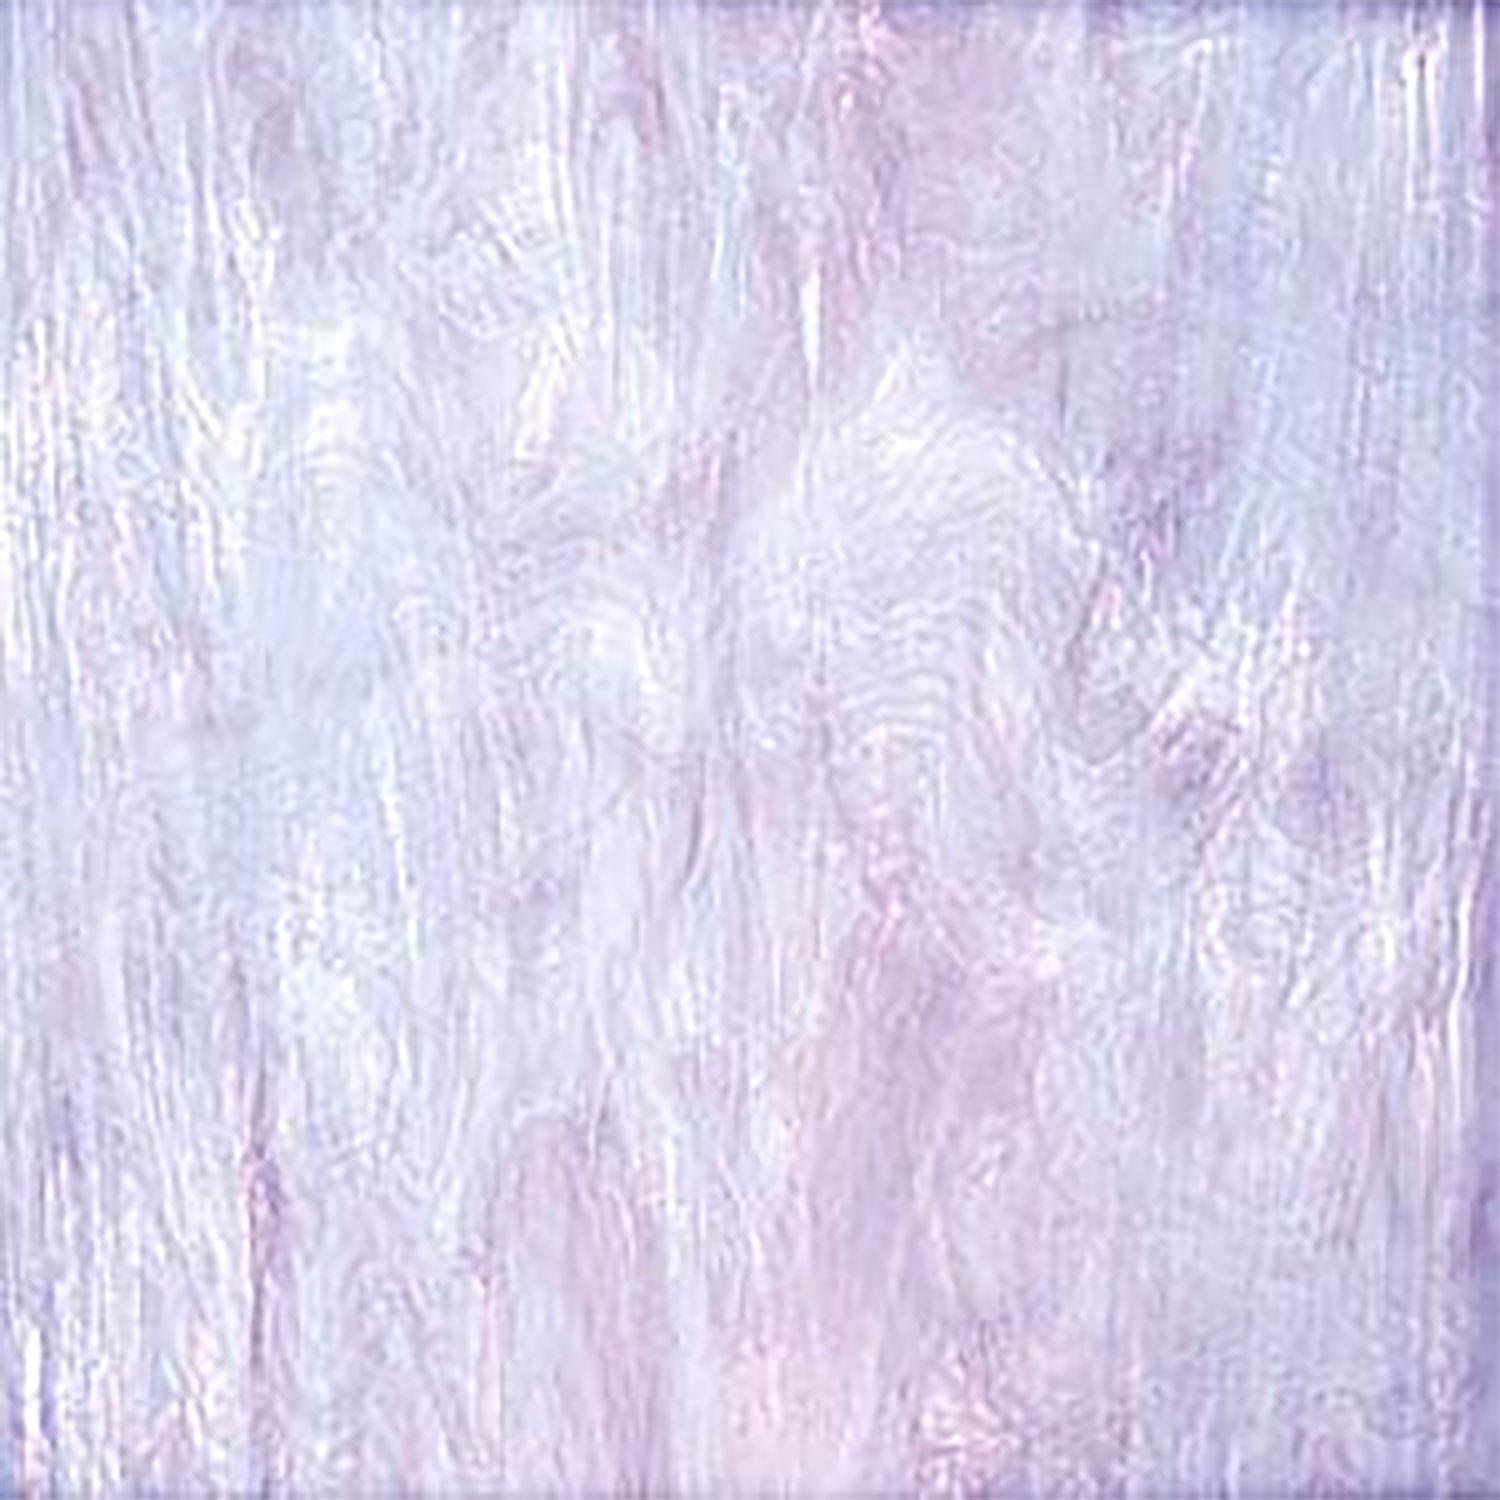 Oceanside Pale Lavender and White Opal - 96 COE